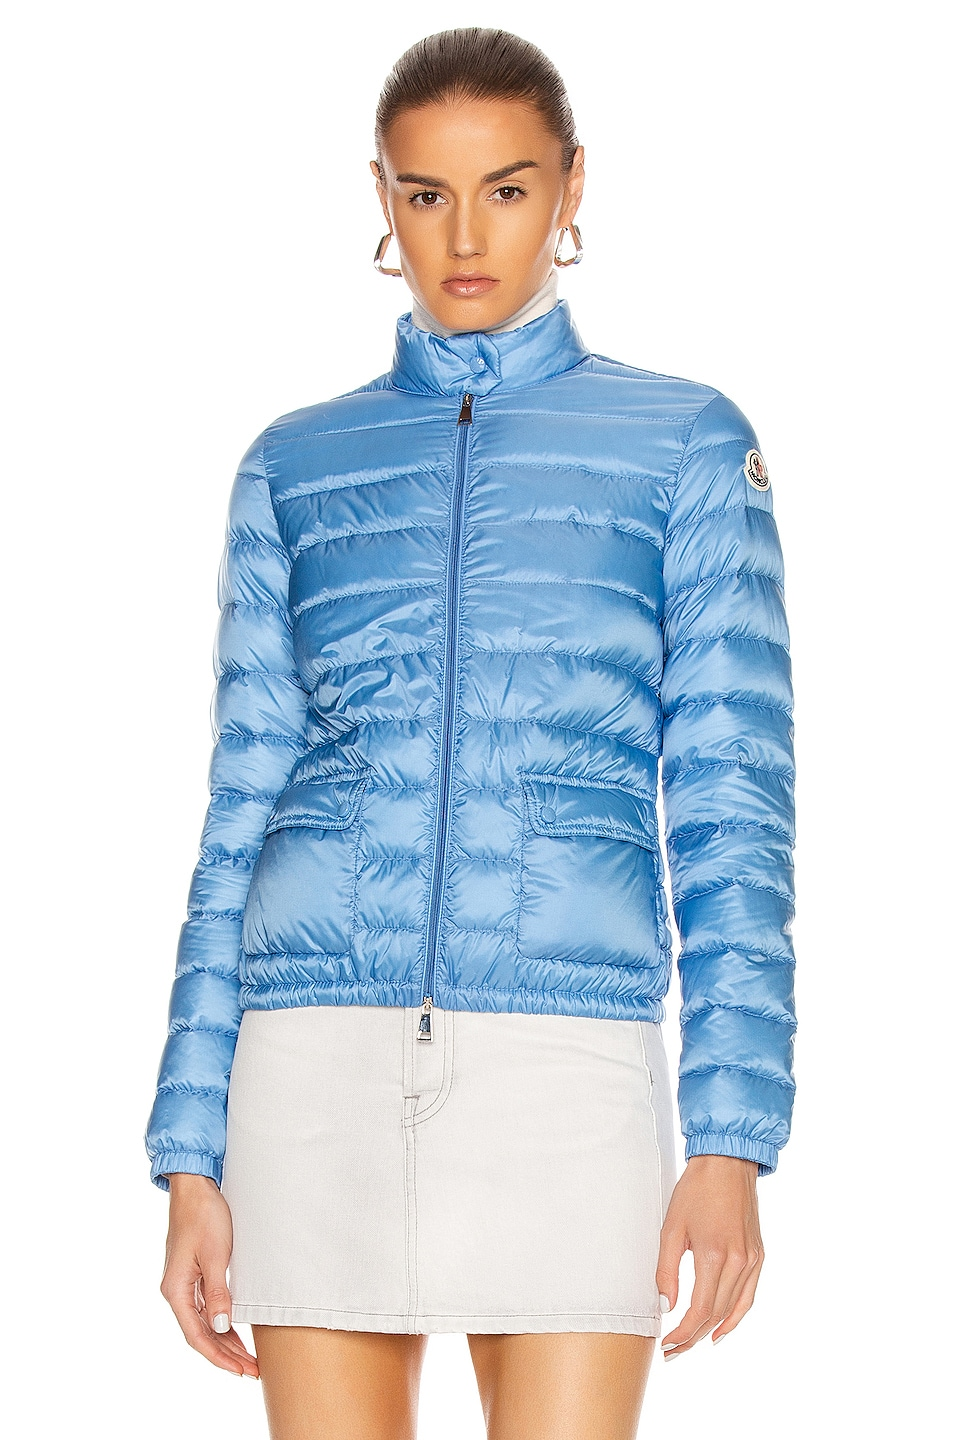 Image 2 of Moncler Lans Giubbotto Jacket in Royal Blue